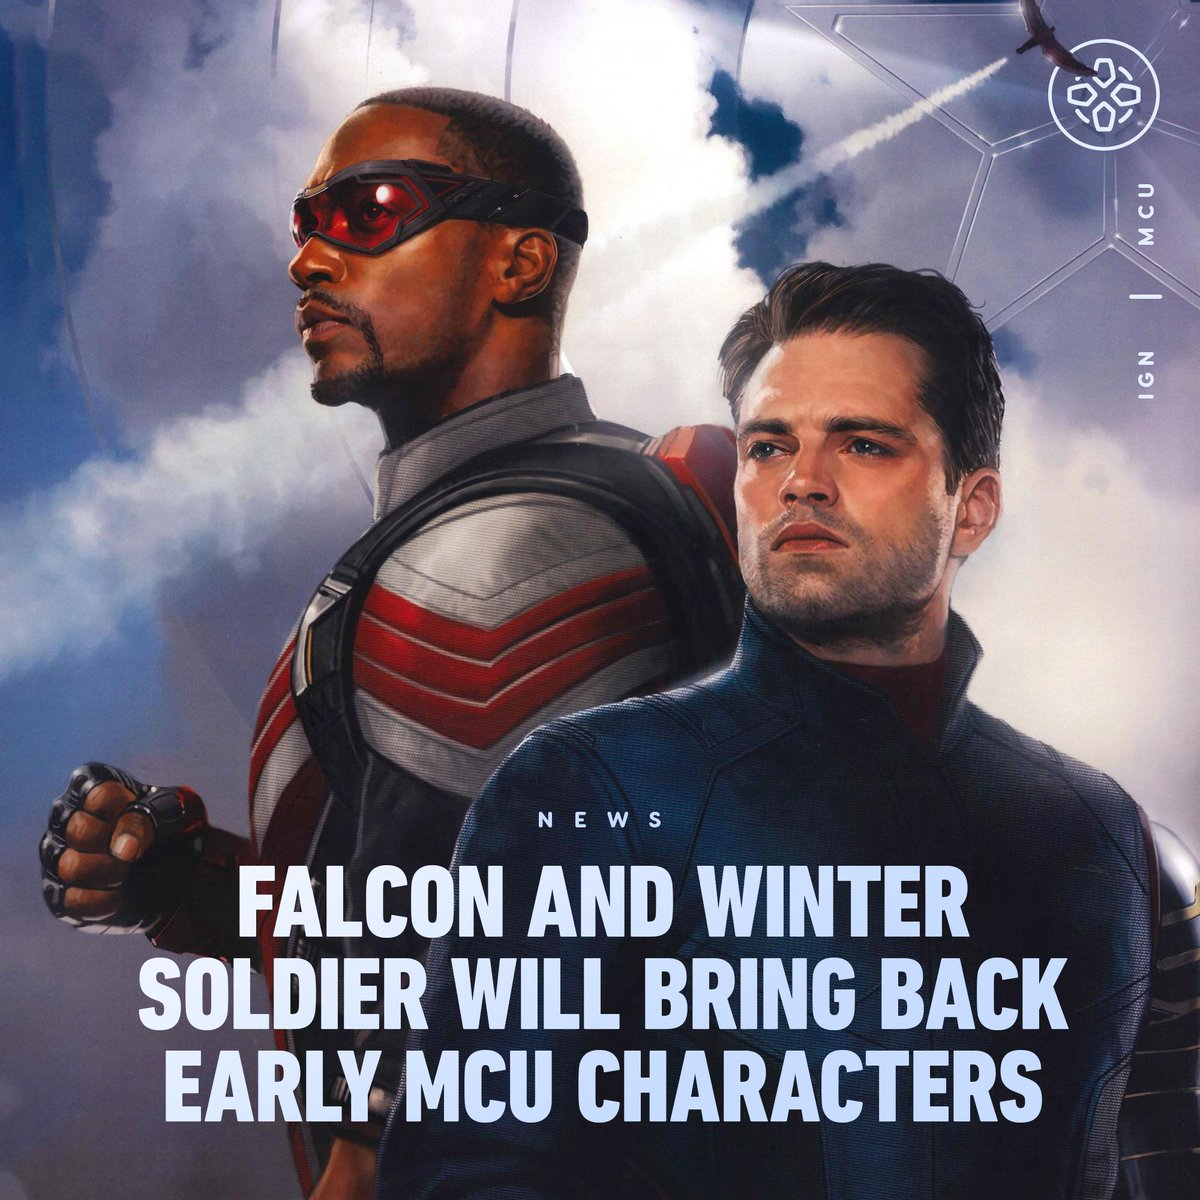 """The Falcon and Winter Soldier writer Derek Kolstad says it's going to be """"f**king awesome"""" to see how the series brings back and reinvents original MCU characters."""